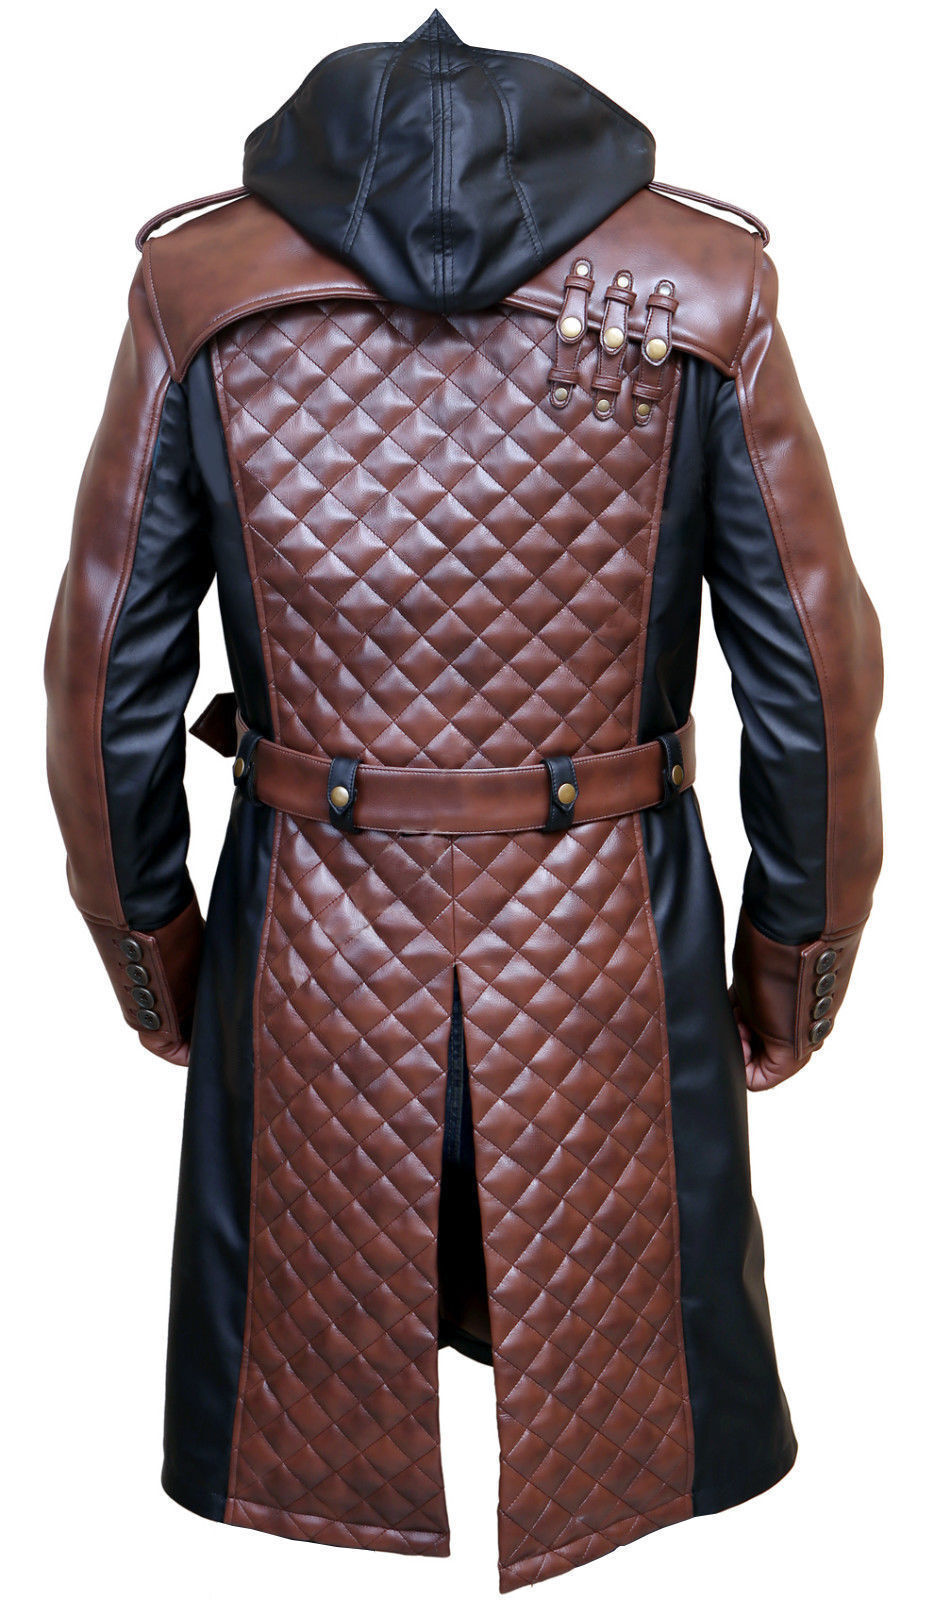 Jacob Frye Assassin's Creed Syndicate Mens Leather Leather Leather Trench Coat Costume-BNWT | Kaufen Sie beruhigt und glücklich spielen